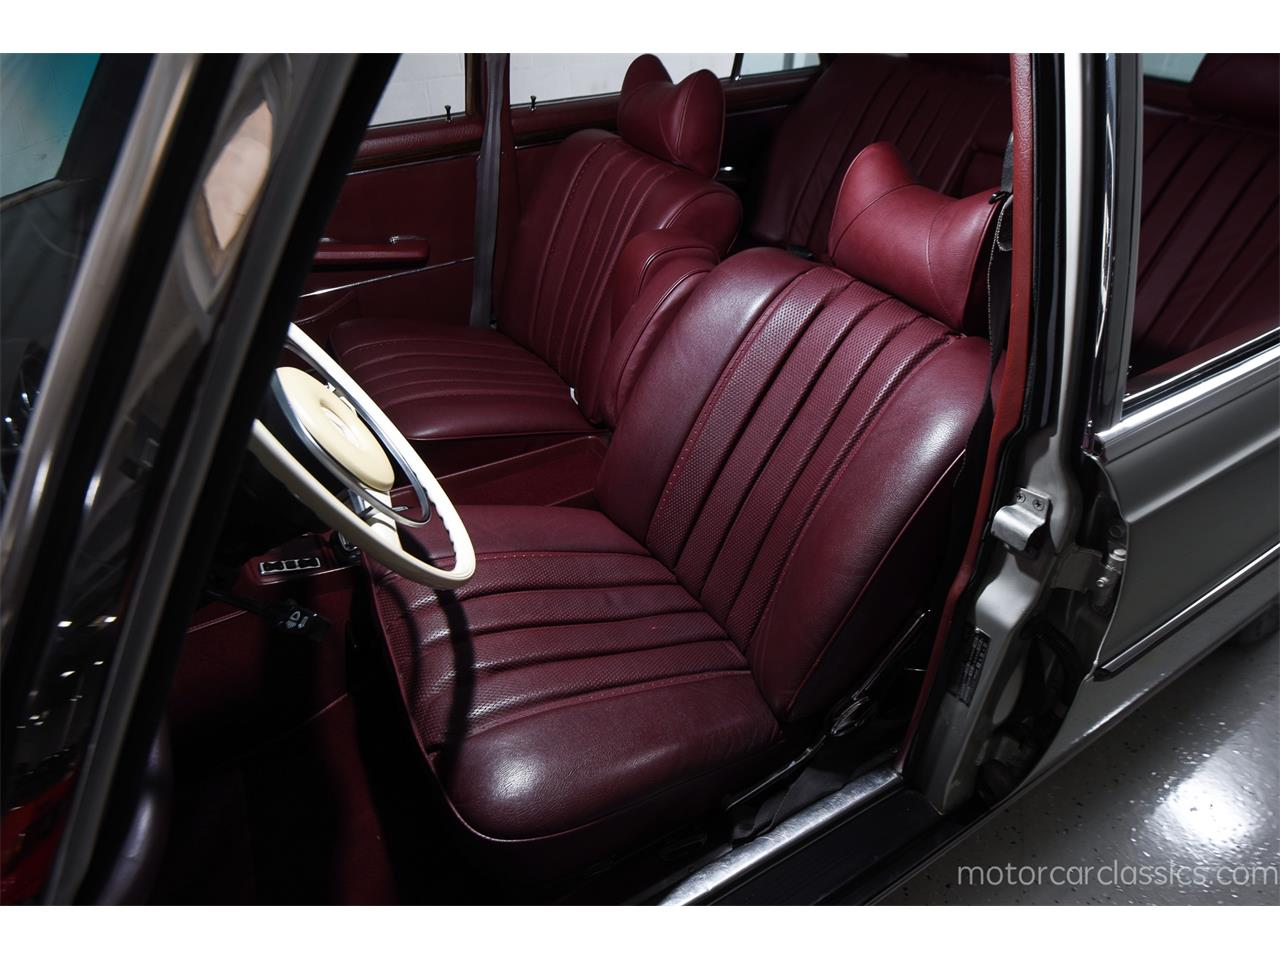 1971 Mercedes-Benz 300SEL for sale in Farmingdale, NY – photo 23